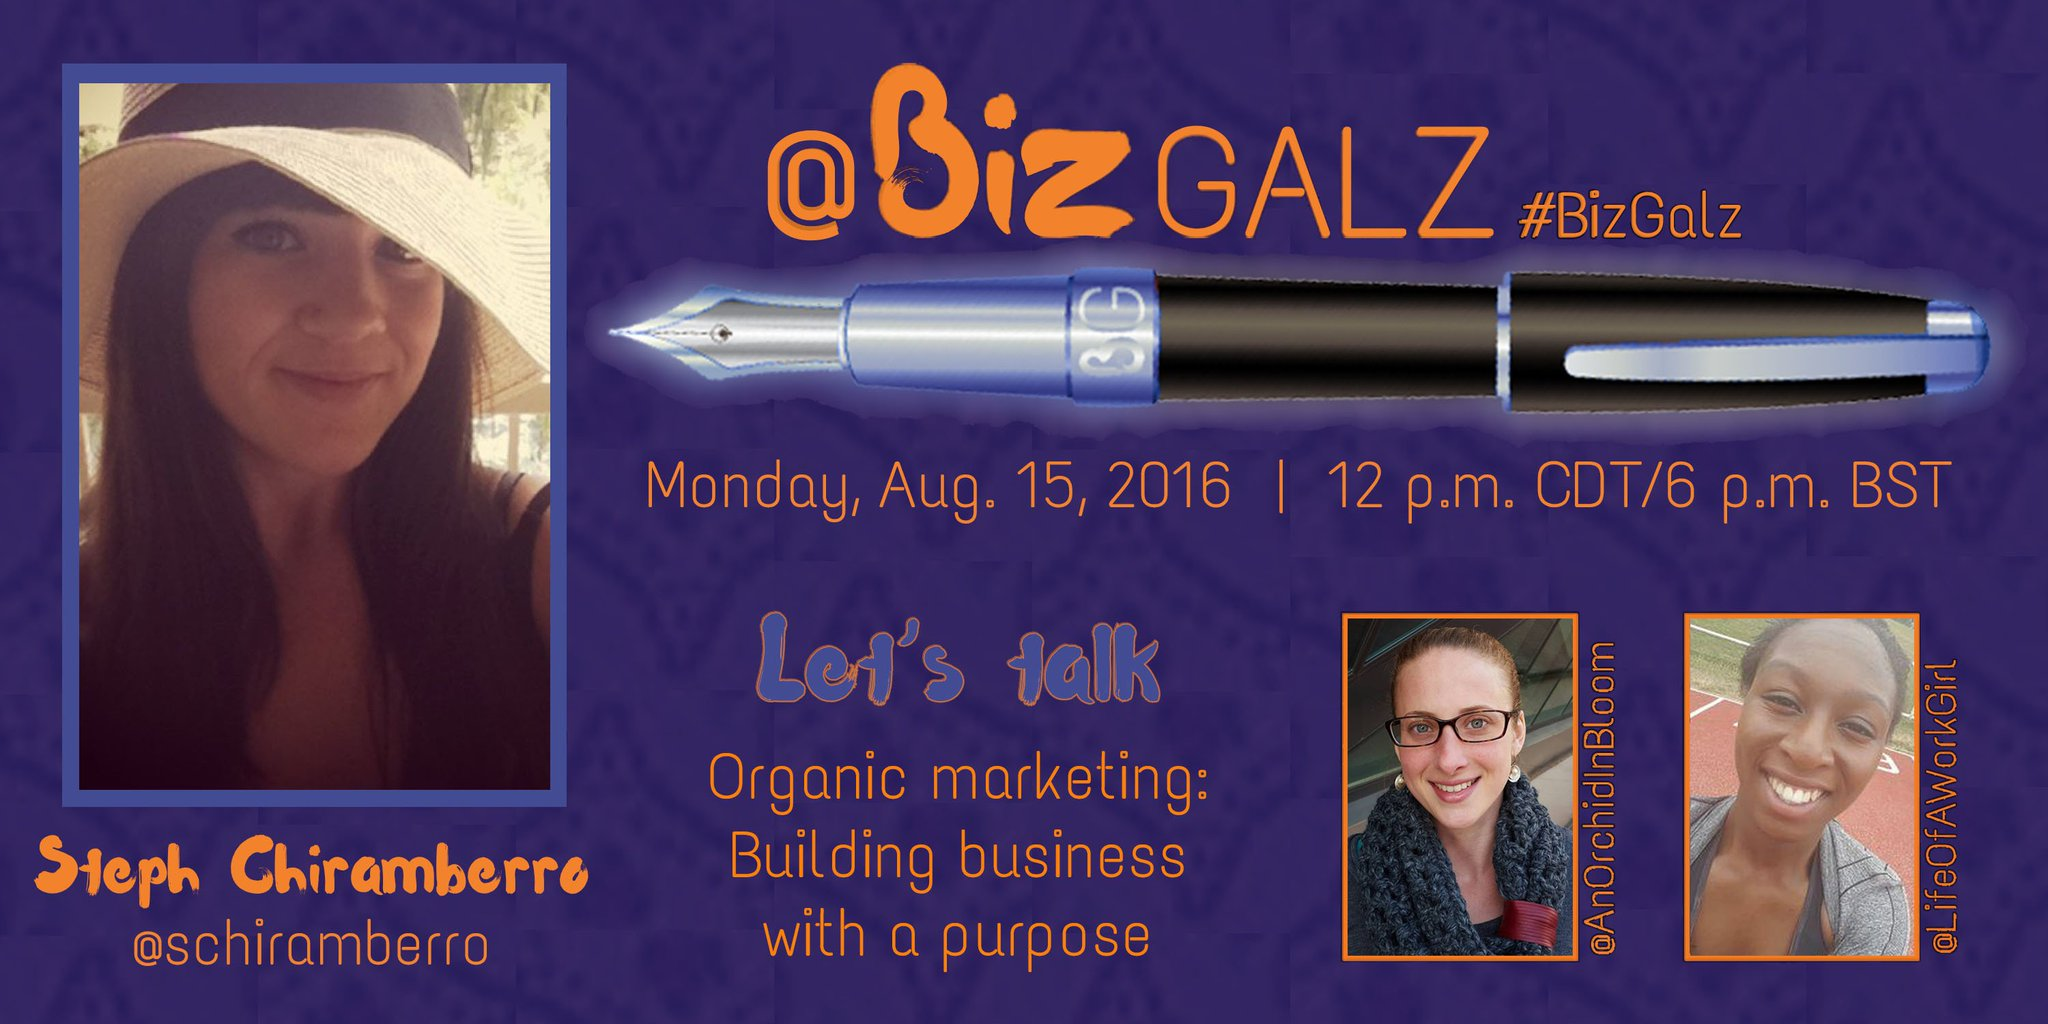 Join us in ONE HOUR to talk #OrganicMarketing with @schiramberro on #BizGalz! https://t.co/0bj4ctwrTF